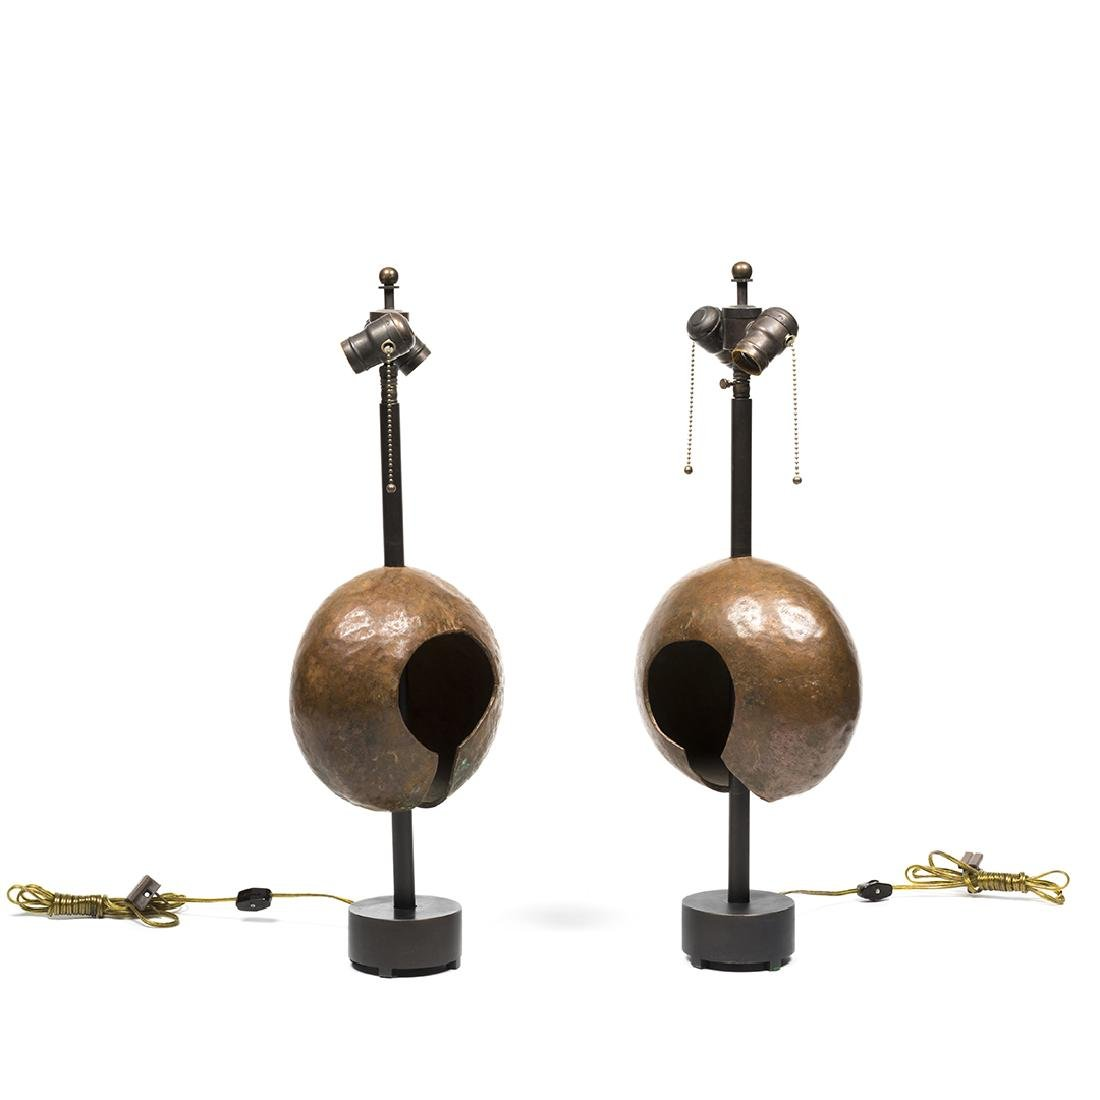 Hammered Copper Lamps (2) - 2